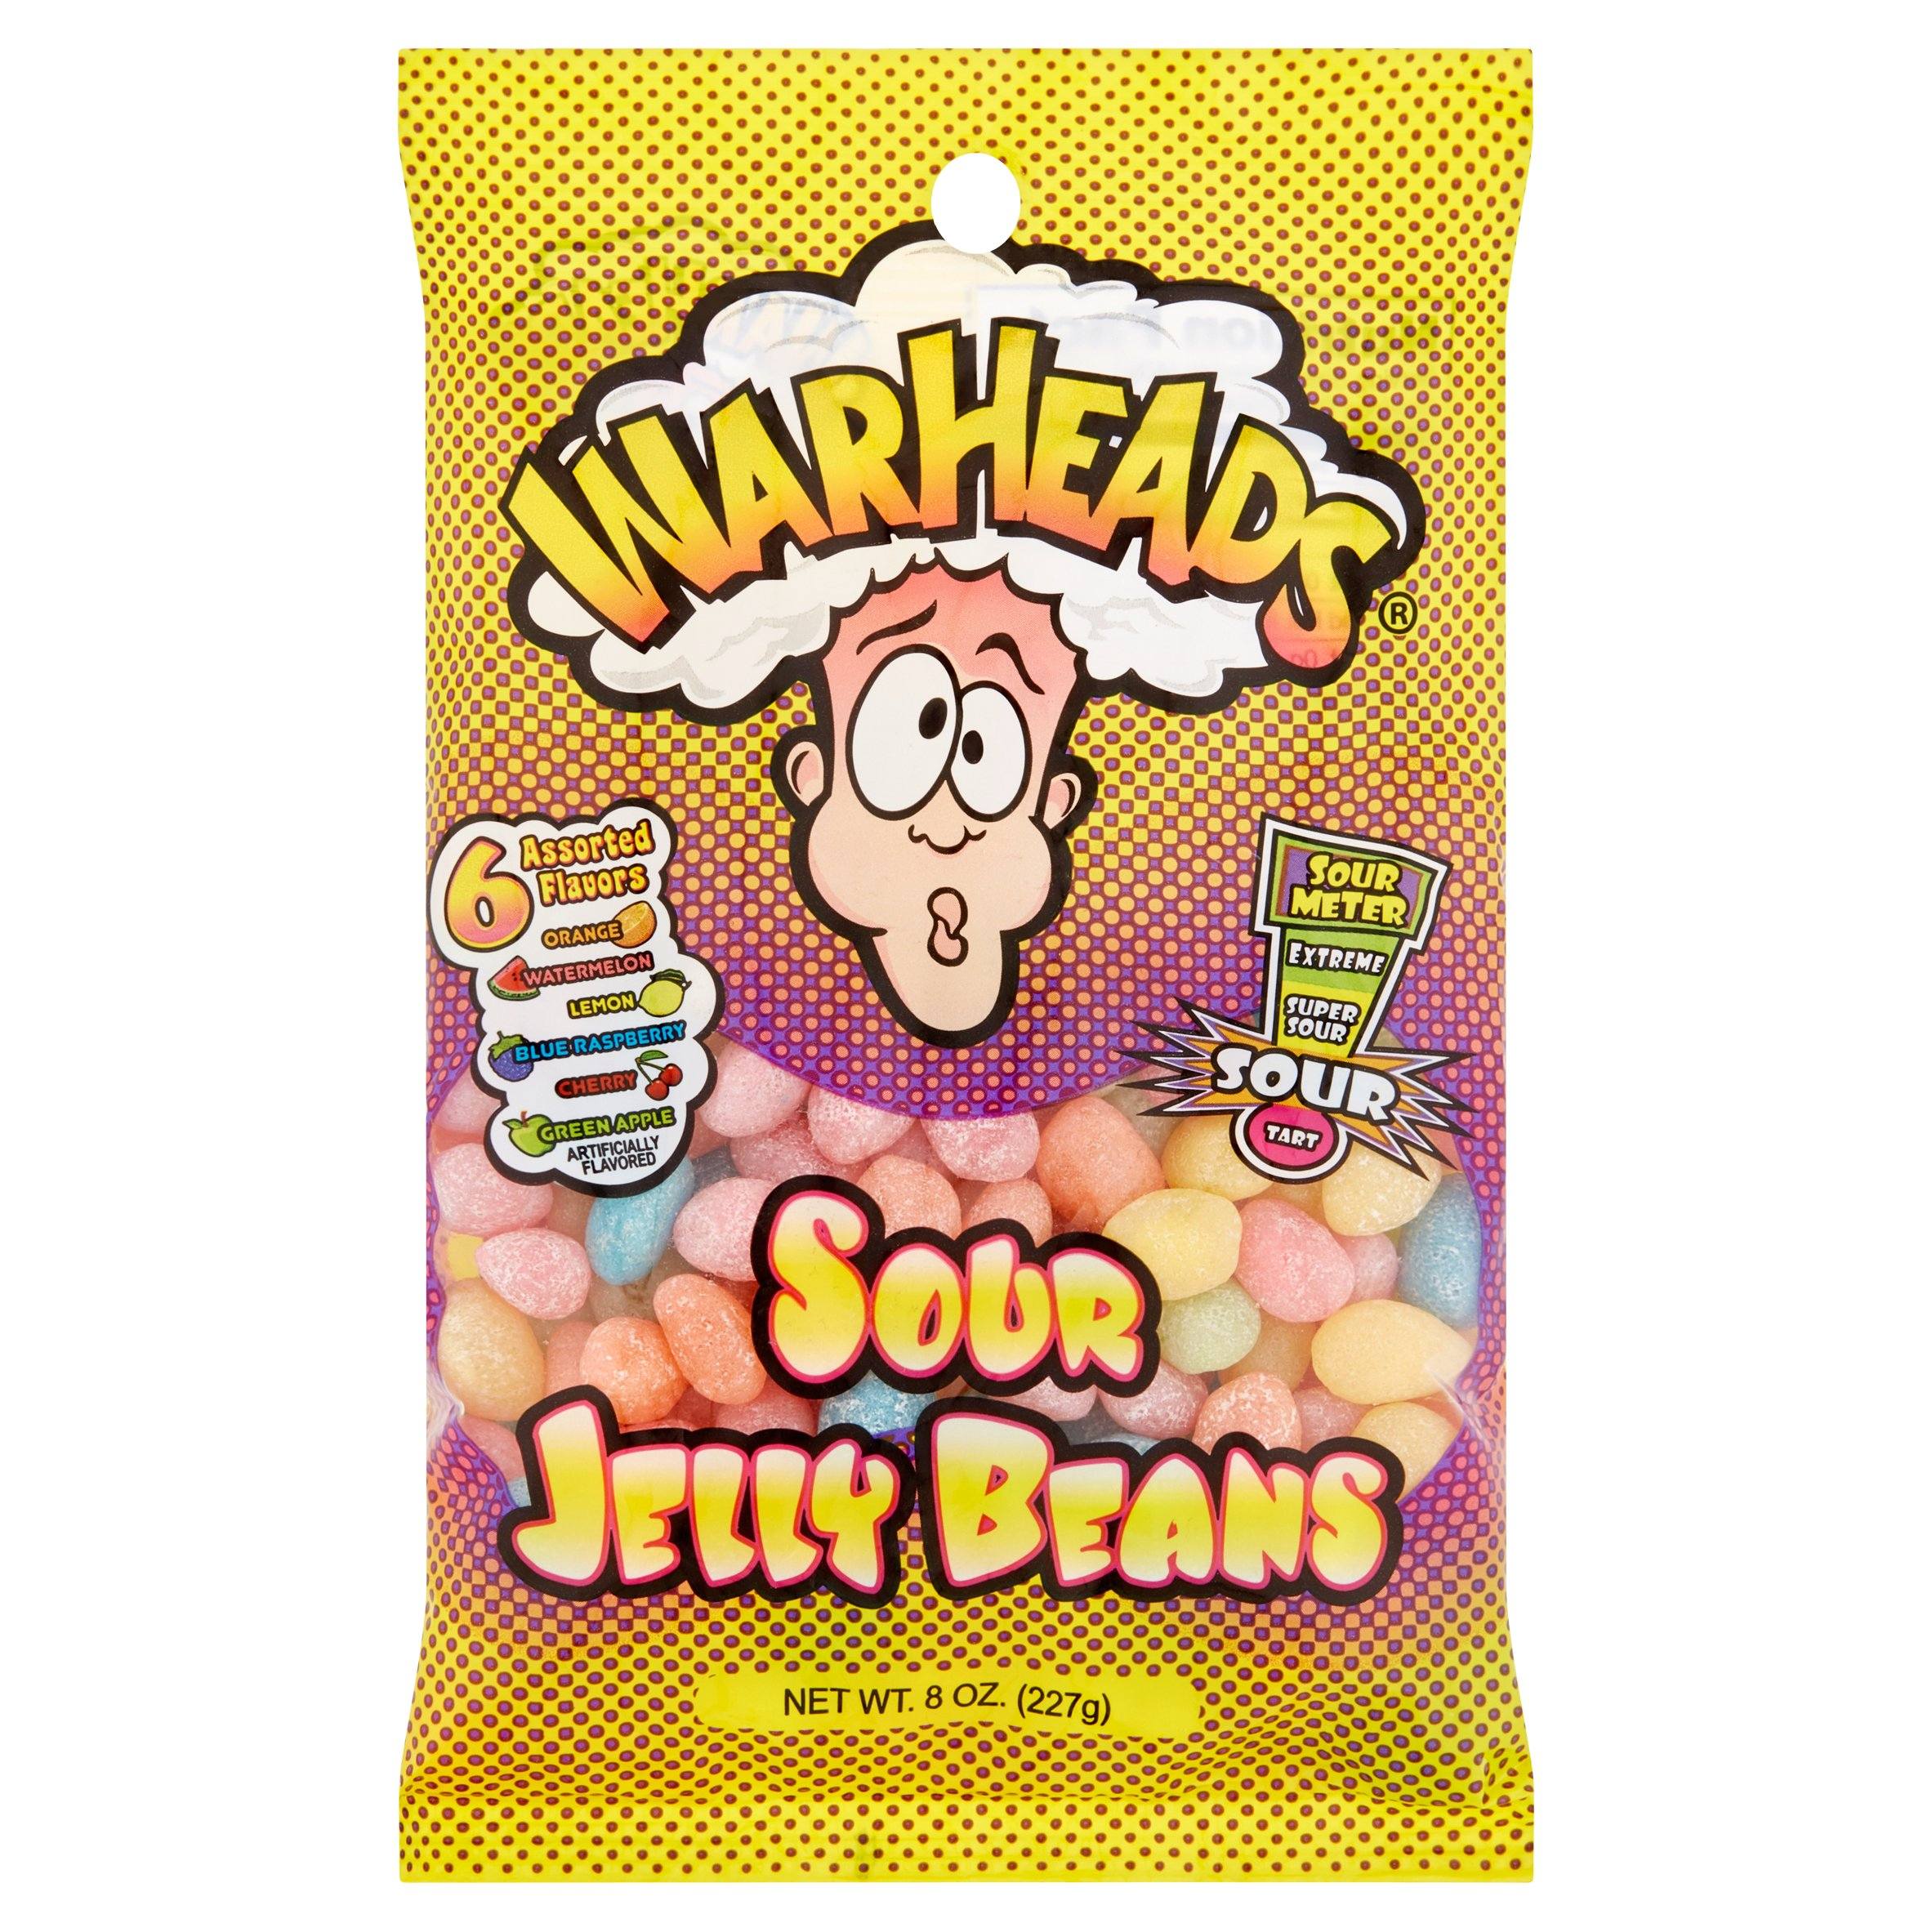 Warheads, 6 Assorted Flavors Sour Jelly Beans, 8 Oz